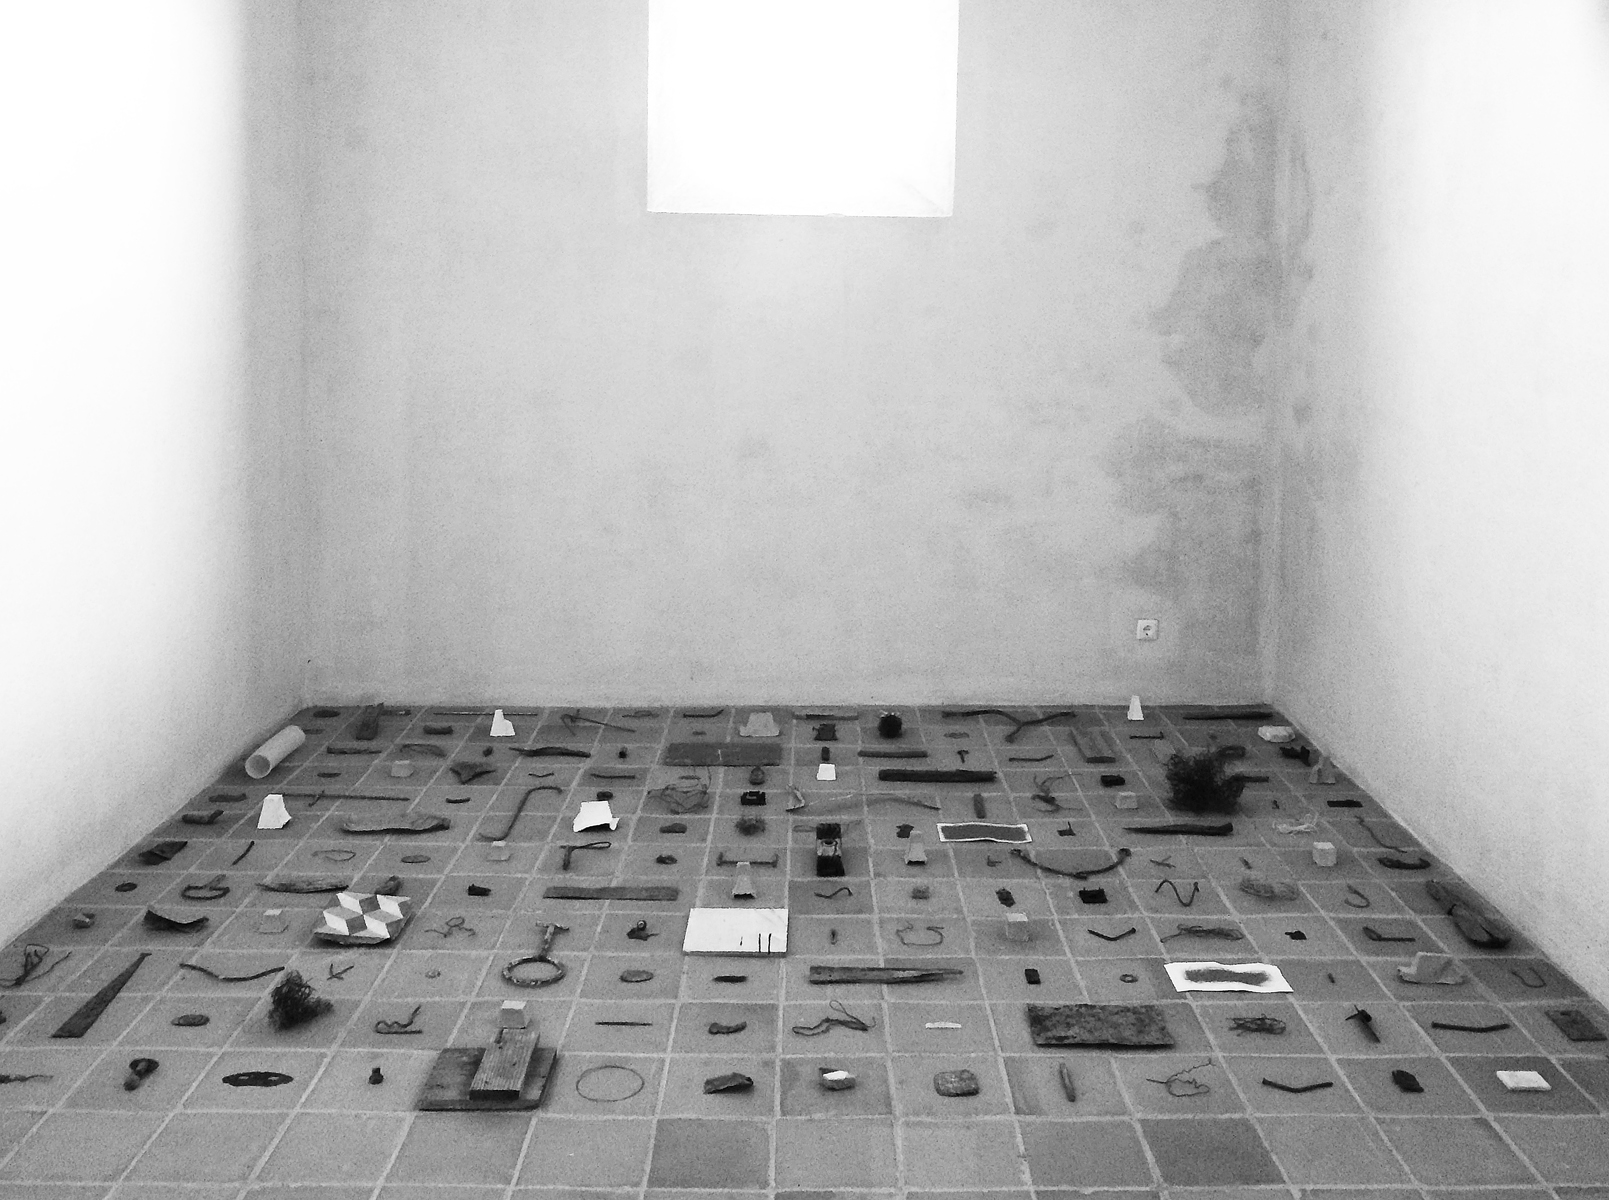 Objects arranged in a grid on a tile floor in an otherwise empty, monastic space.